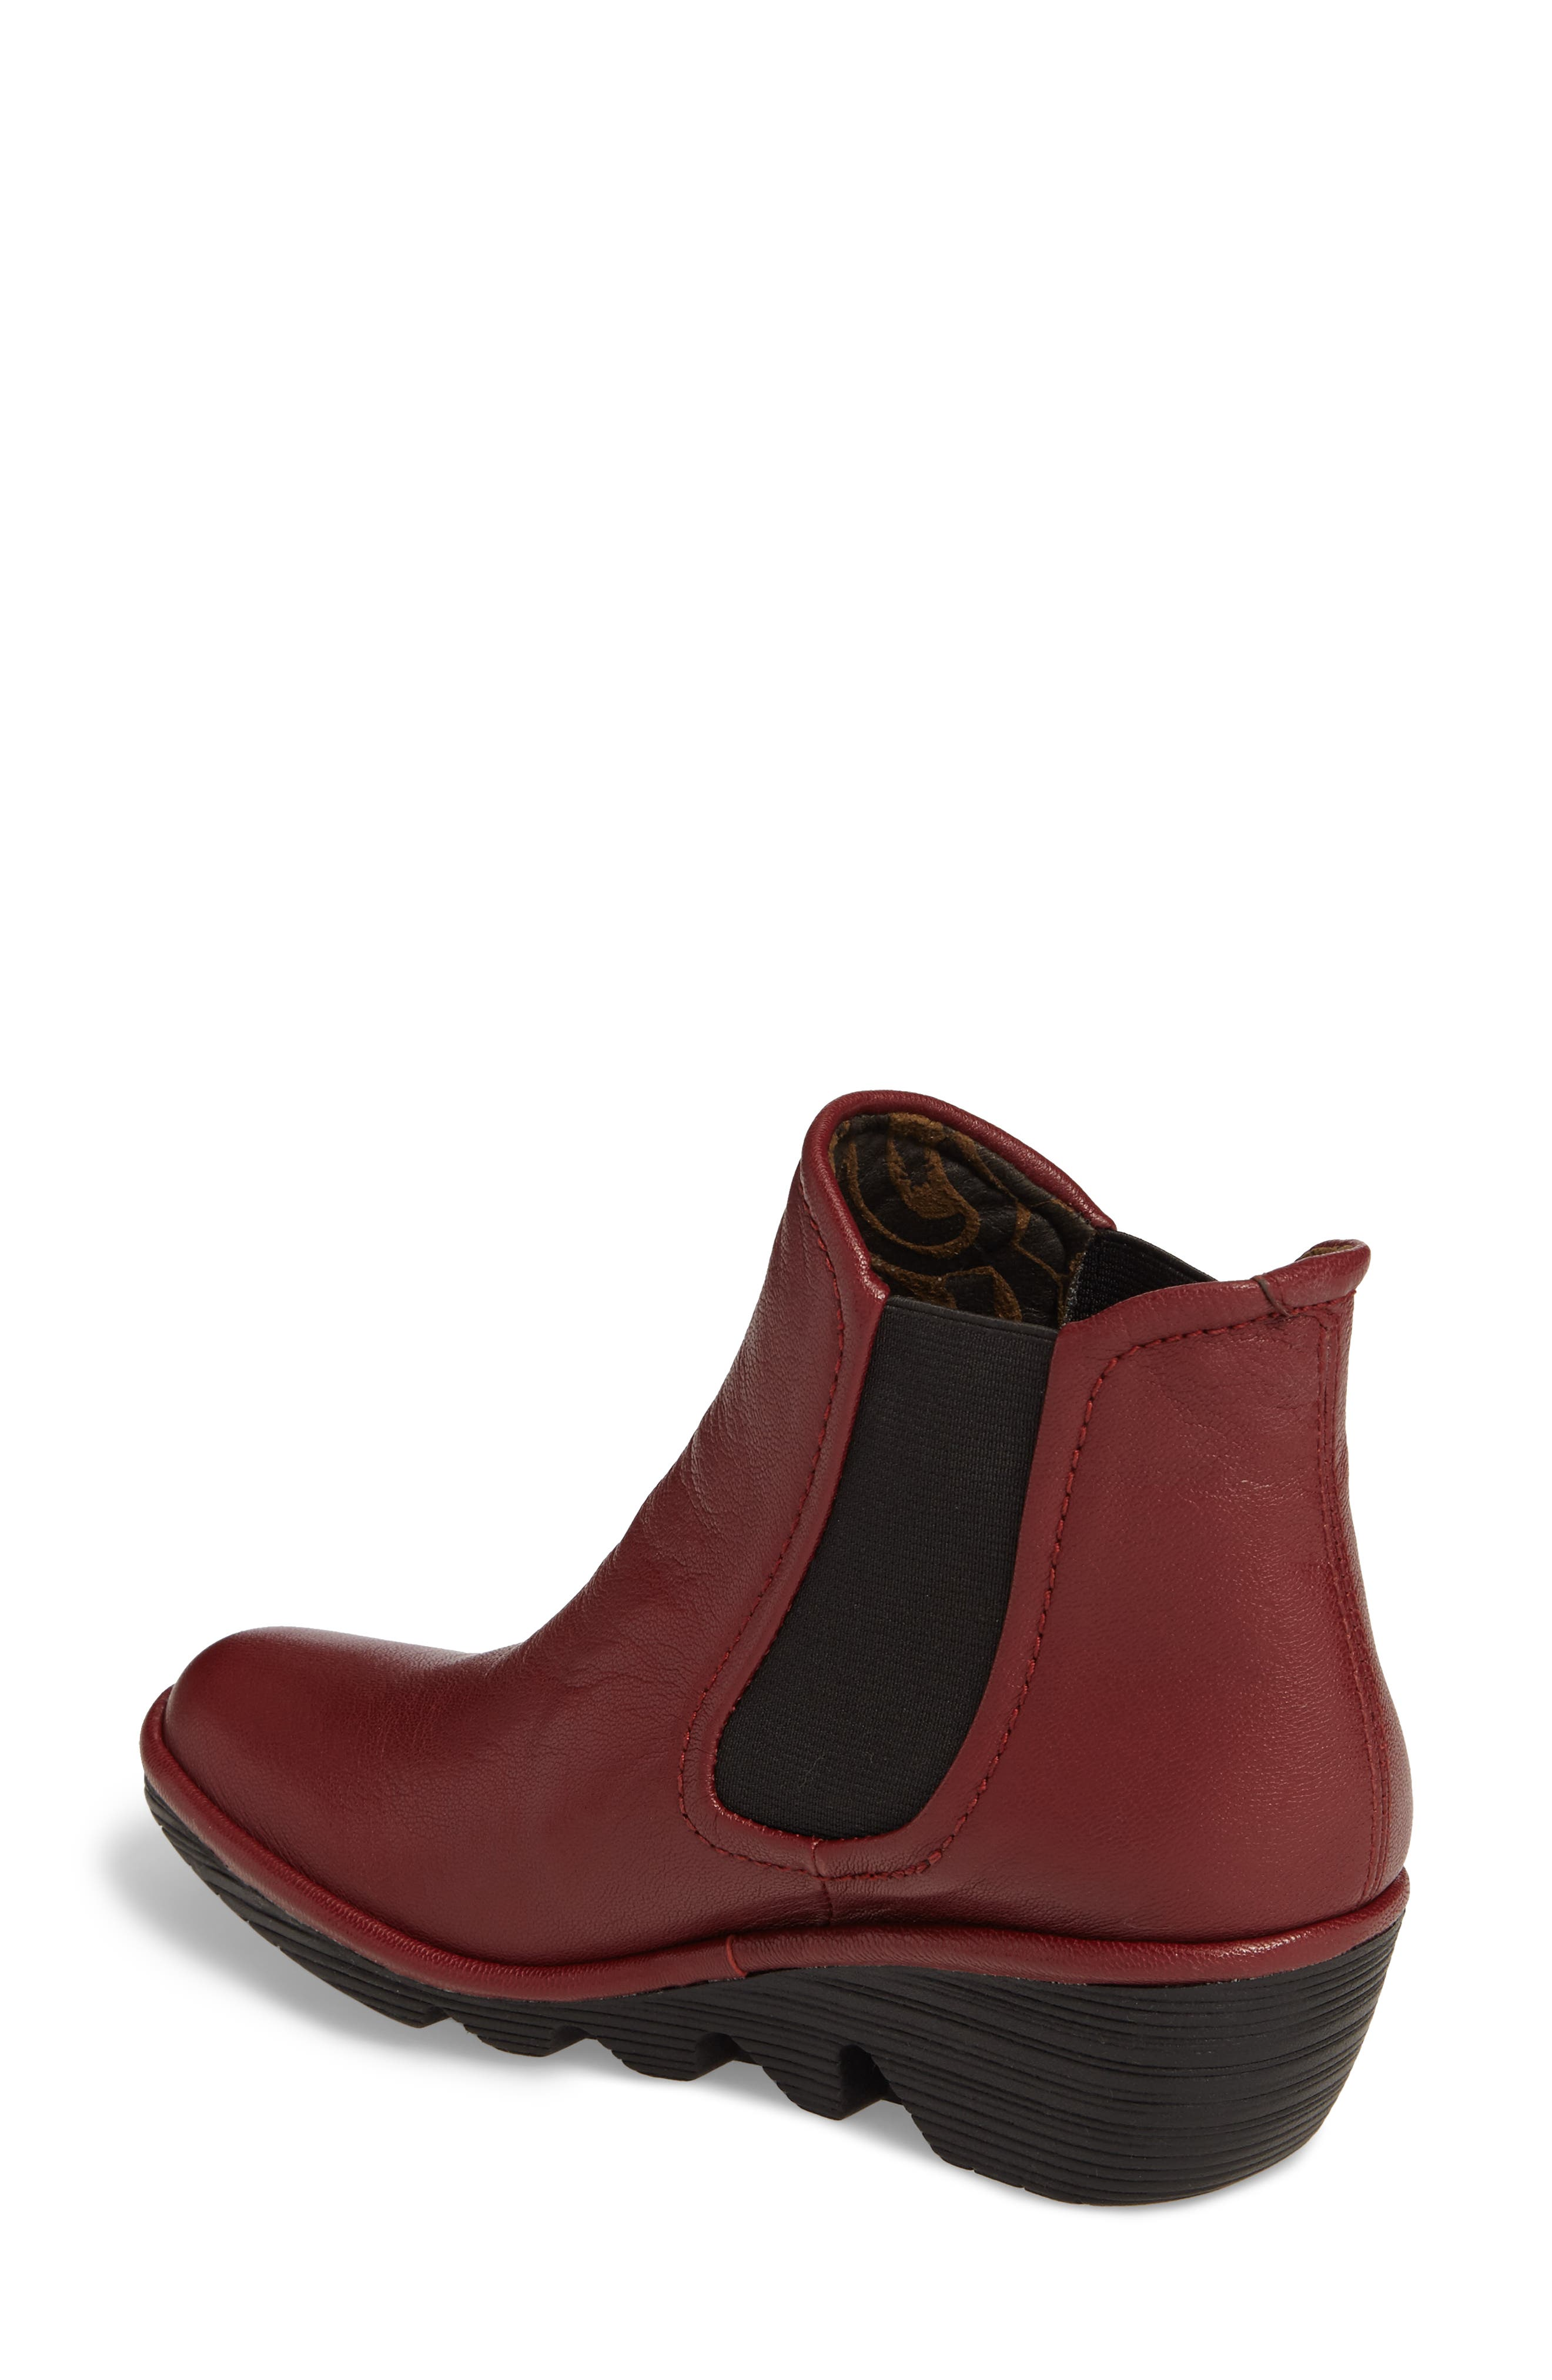 'Phil' Chelsea Boot,                             Alternate thumbnail 9, color,